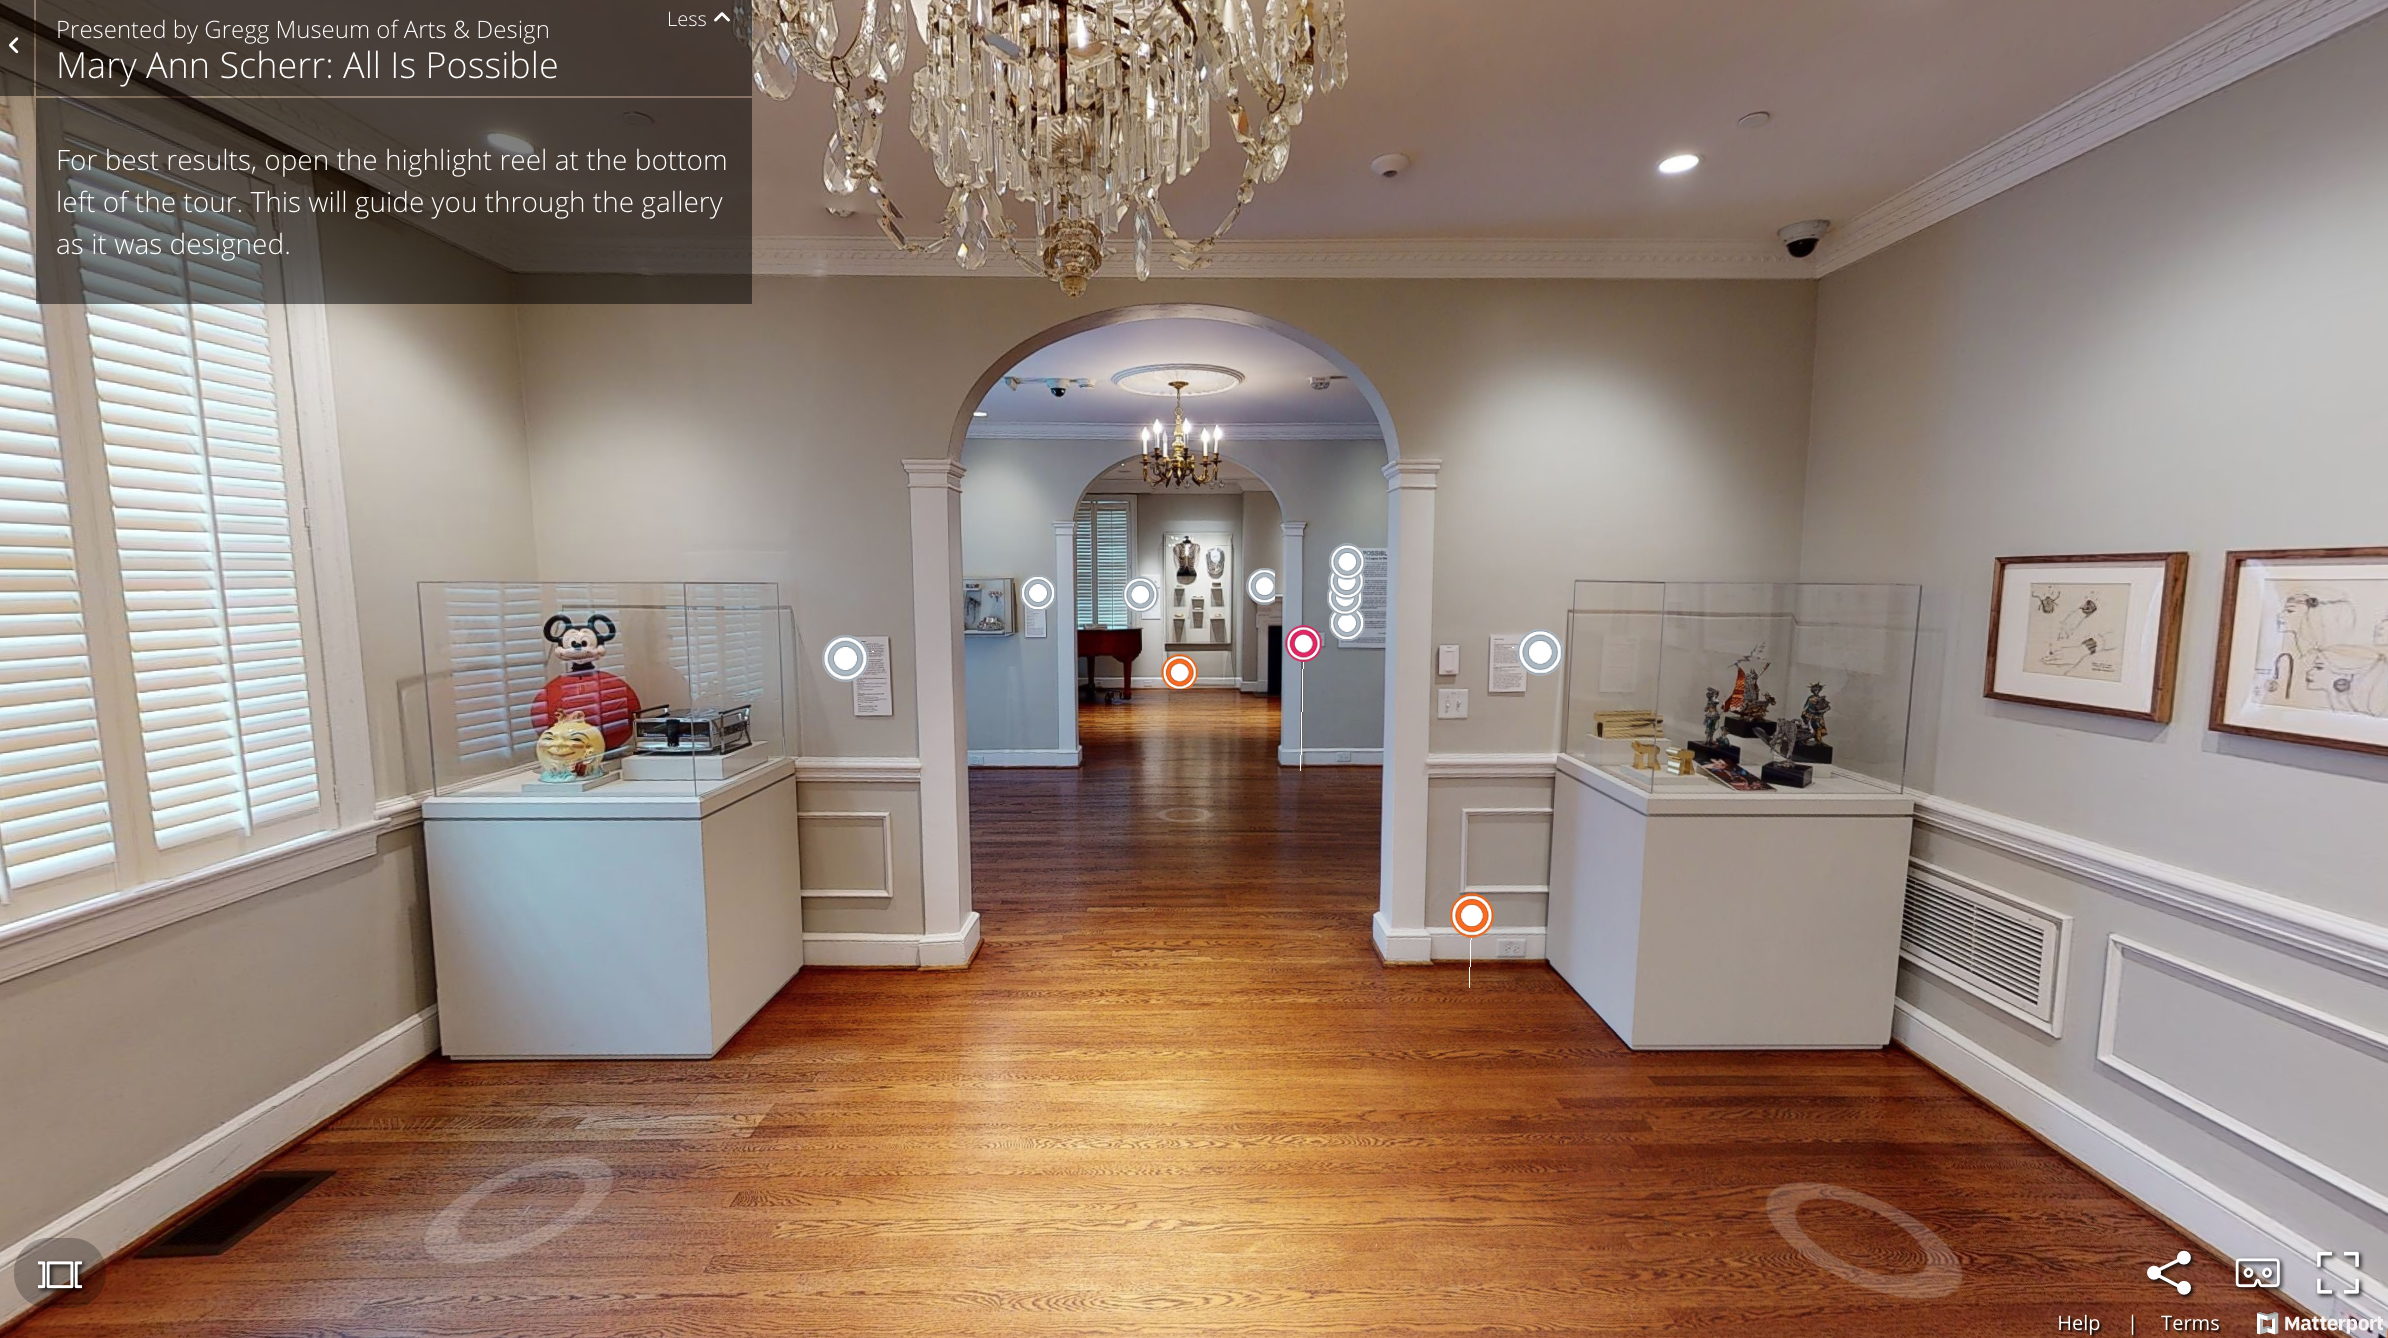 A glimpse into one of The Gregg Museum's virtual exhibits.